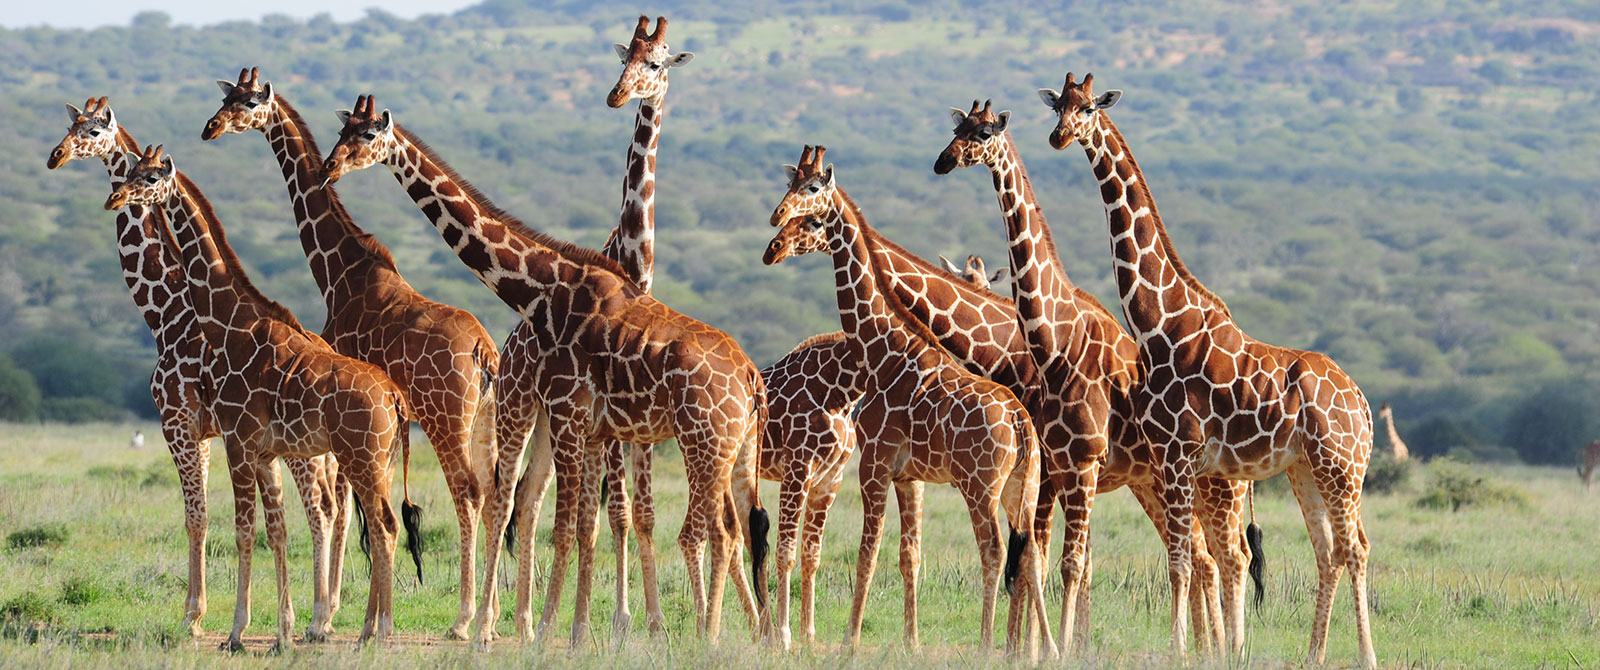 Giraffes Spotted on Karisia Walking Safaris - Kenya Walking Safari: A Walk in the Wild Travel Package